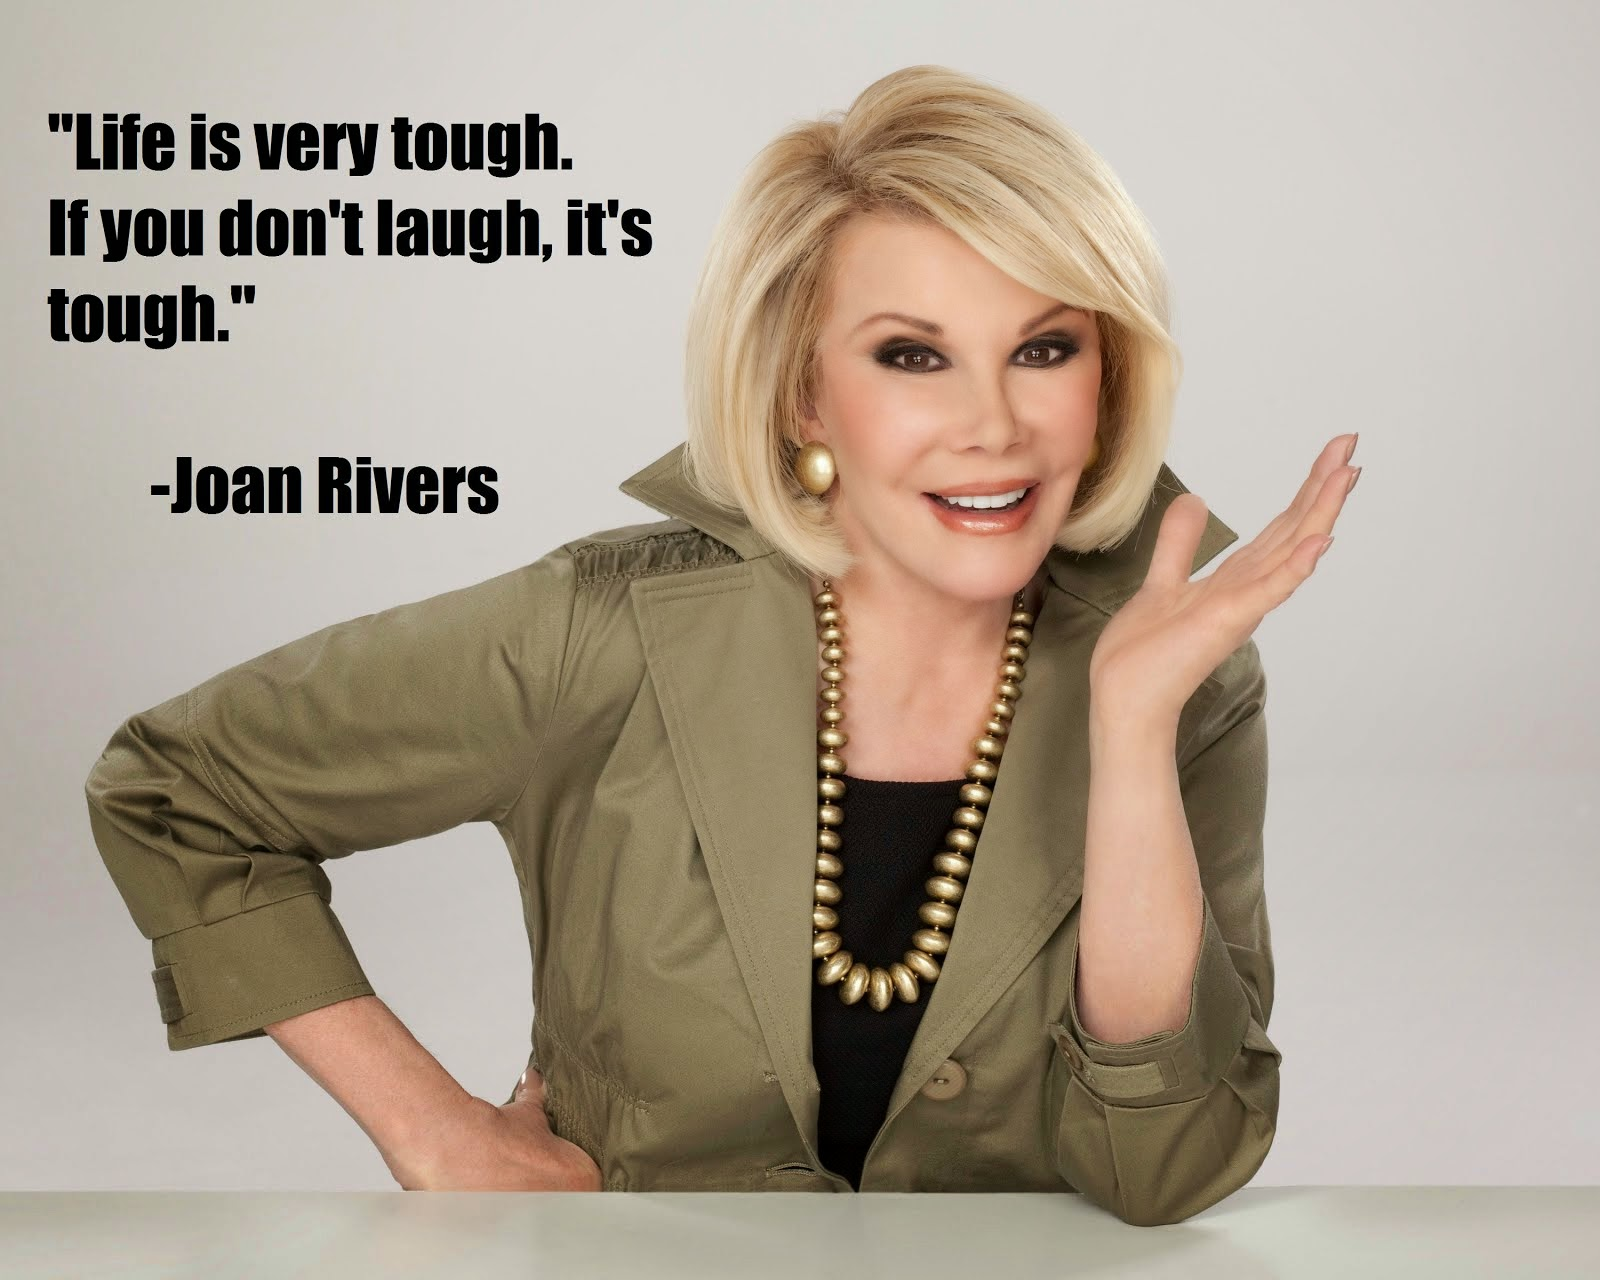 Joan Rivers said...